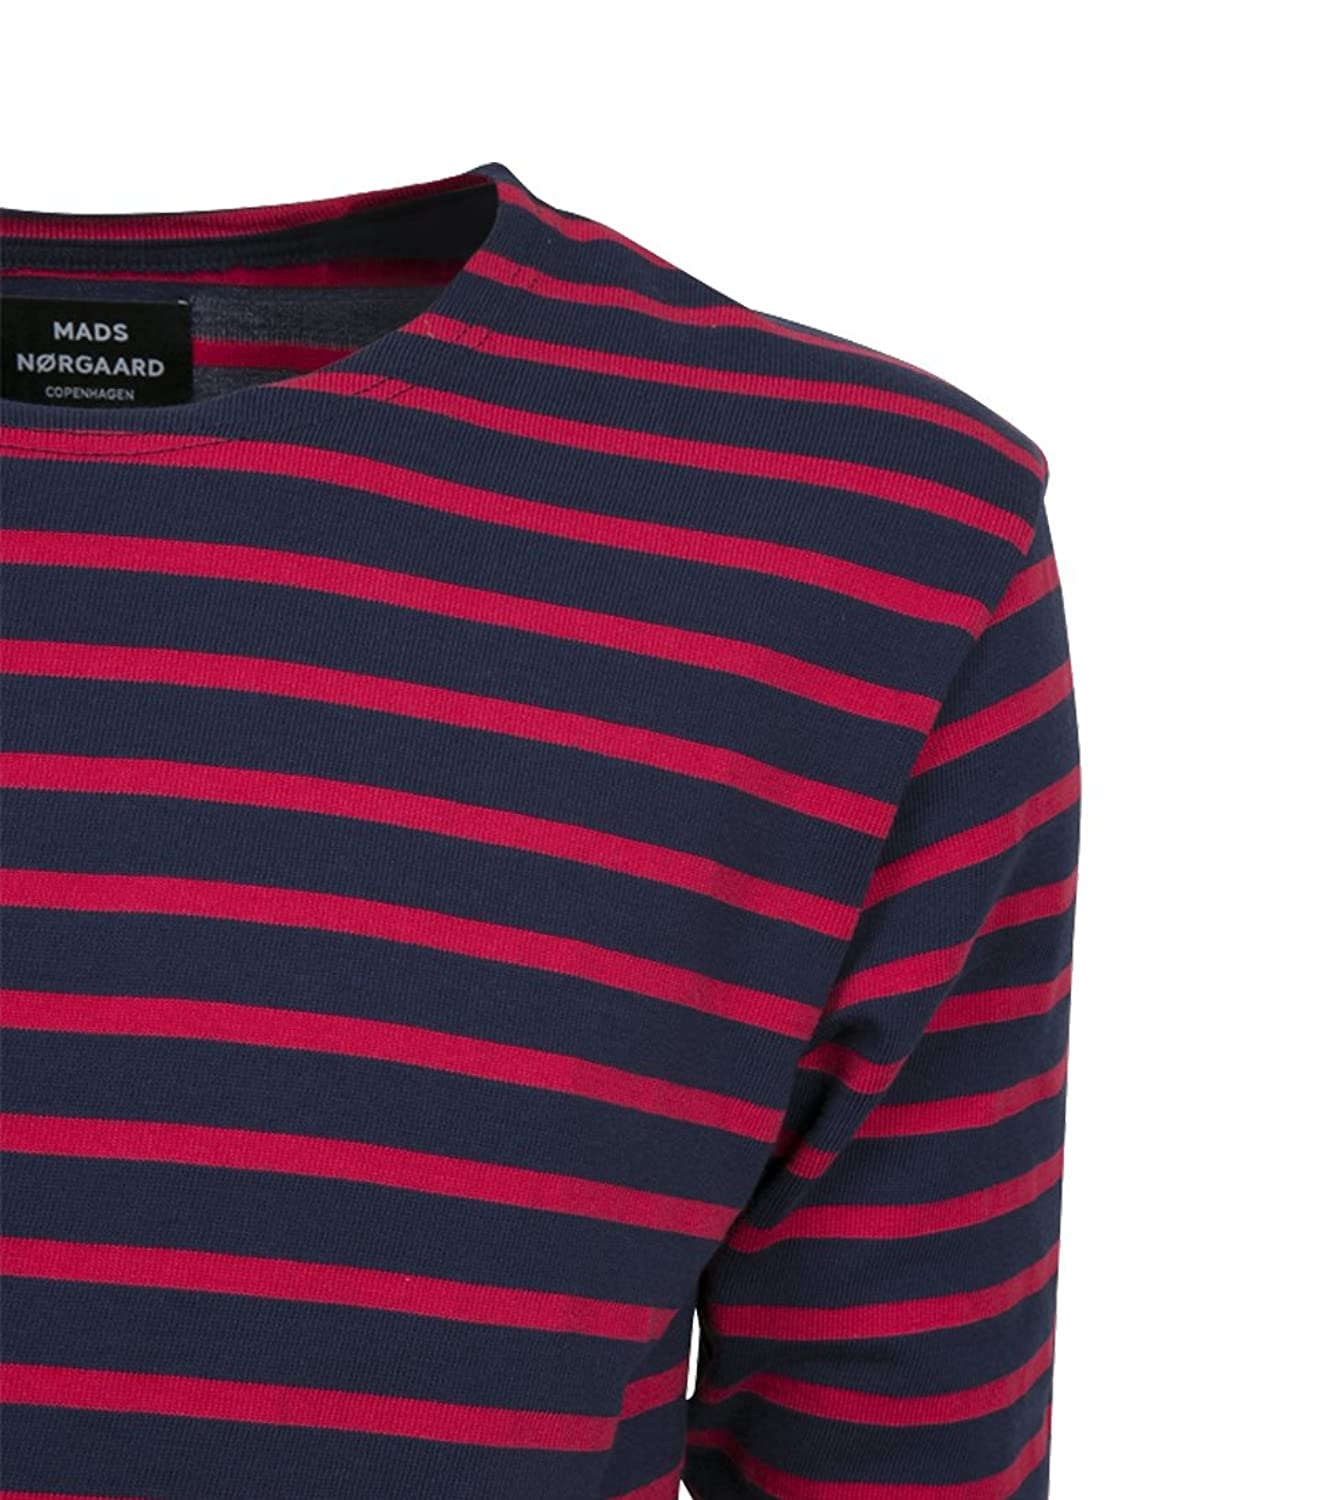 MADS NORGAARD Herren Langarmshirt Tash Long in Rot-Blau 037 Navy Red XL:  Amazon.de: Bekleidung